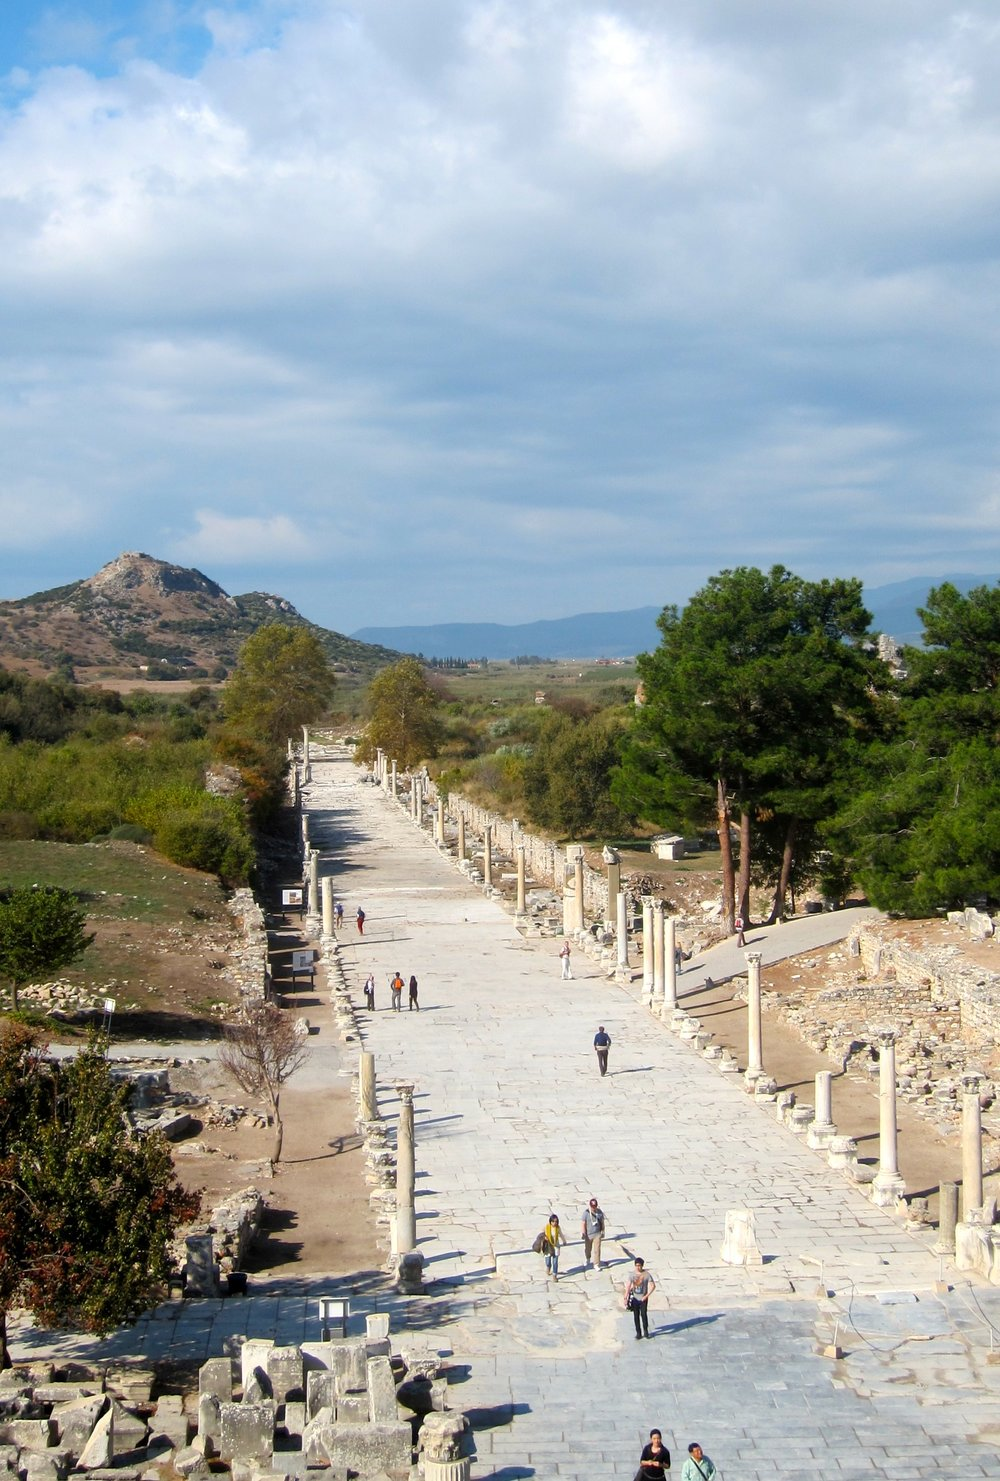 The ruins of Ephesus also sit among mountains and near the sea.